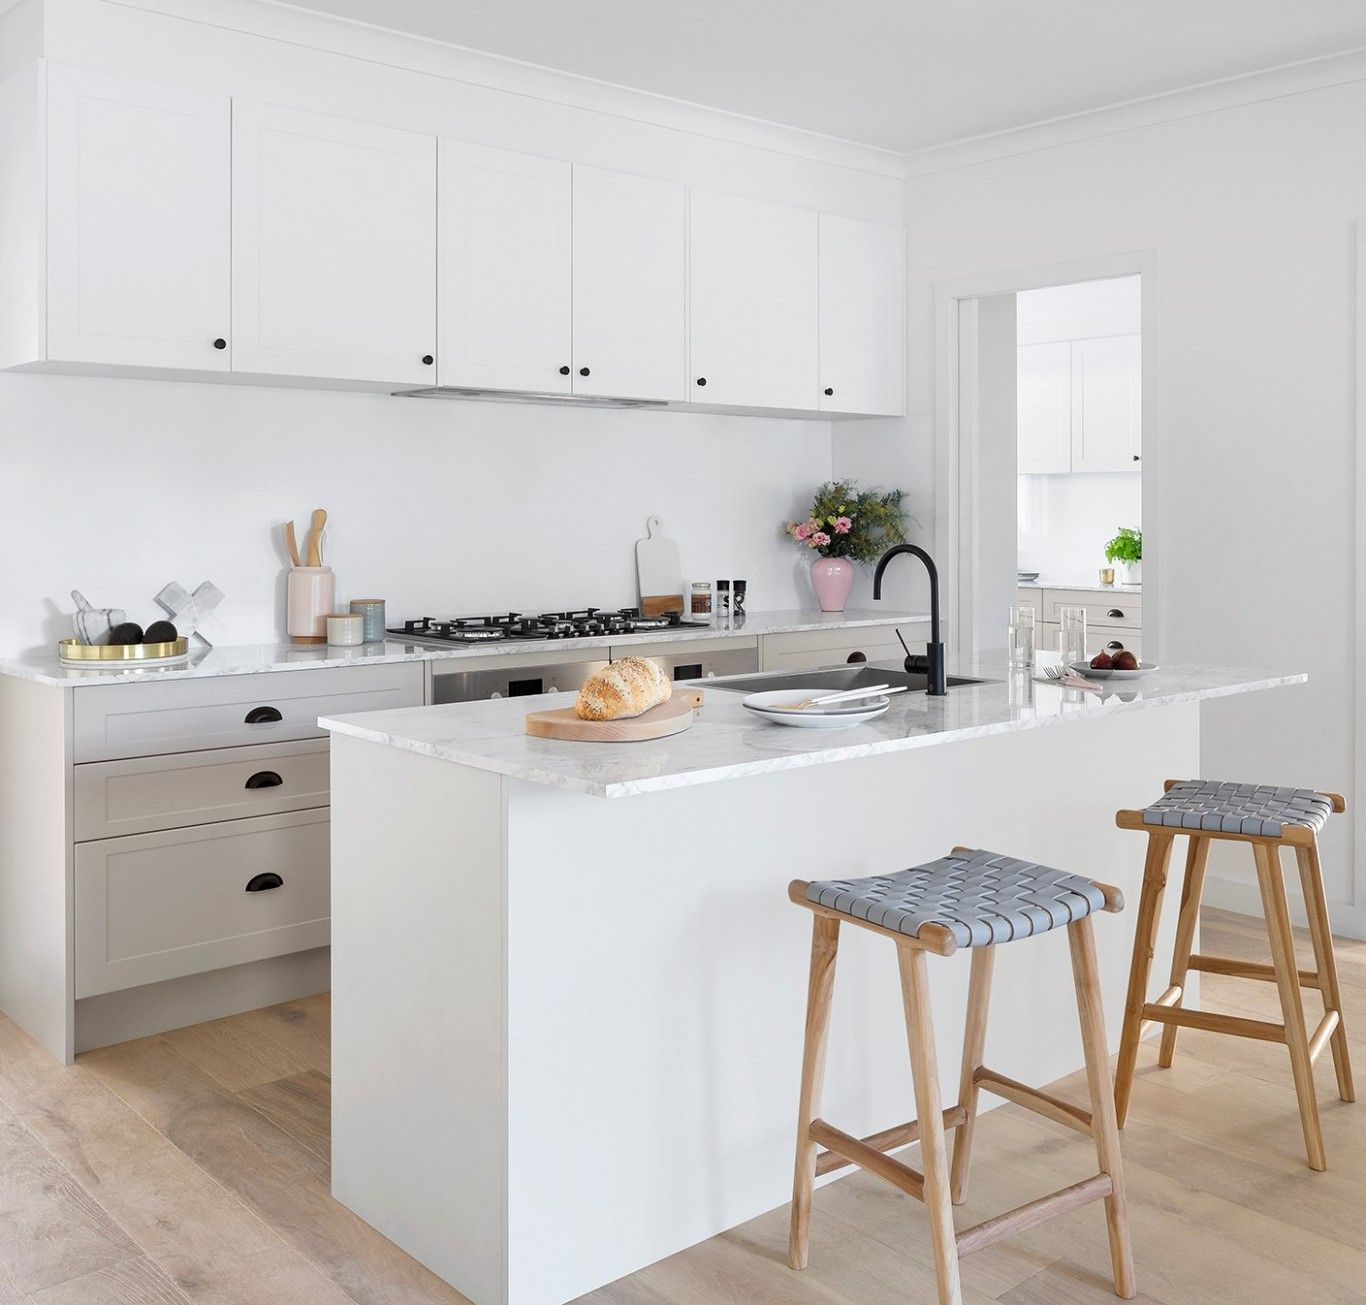 10 Things You Need To Know About Bunnings Kitchen Design